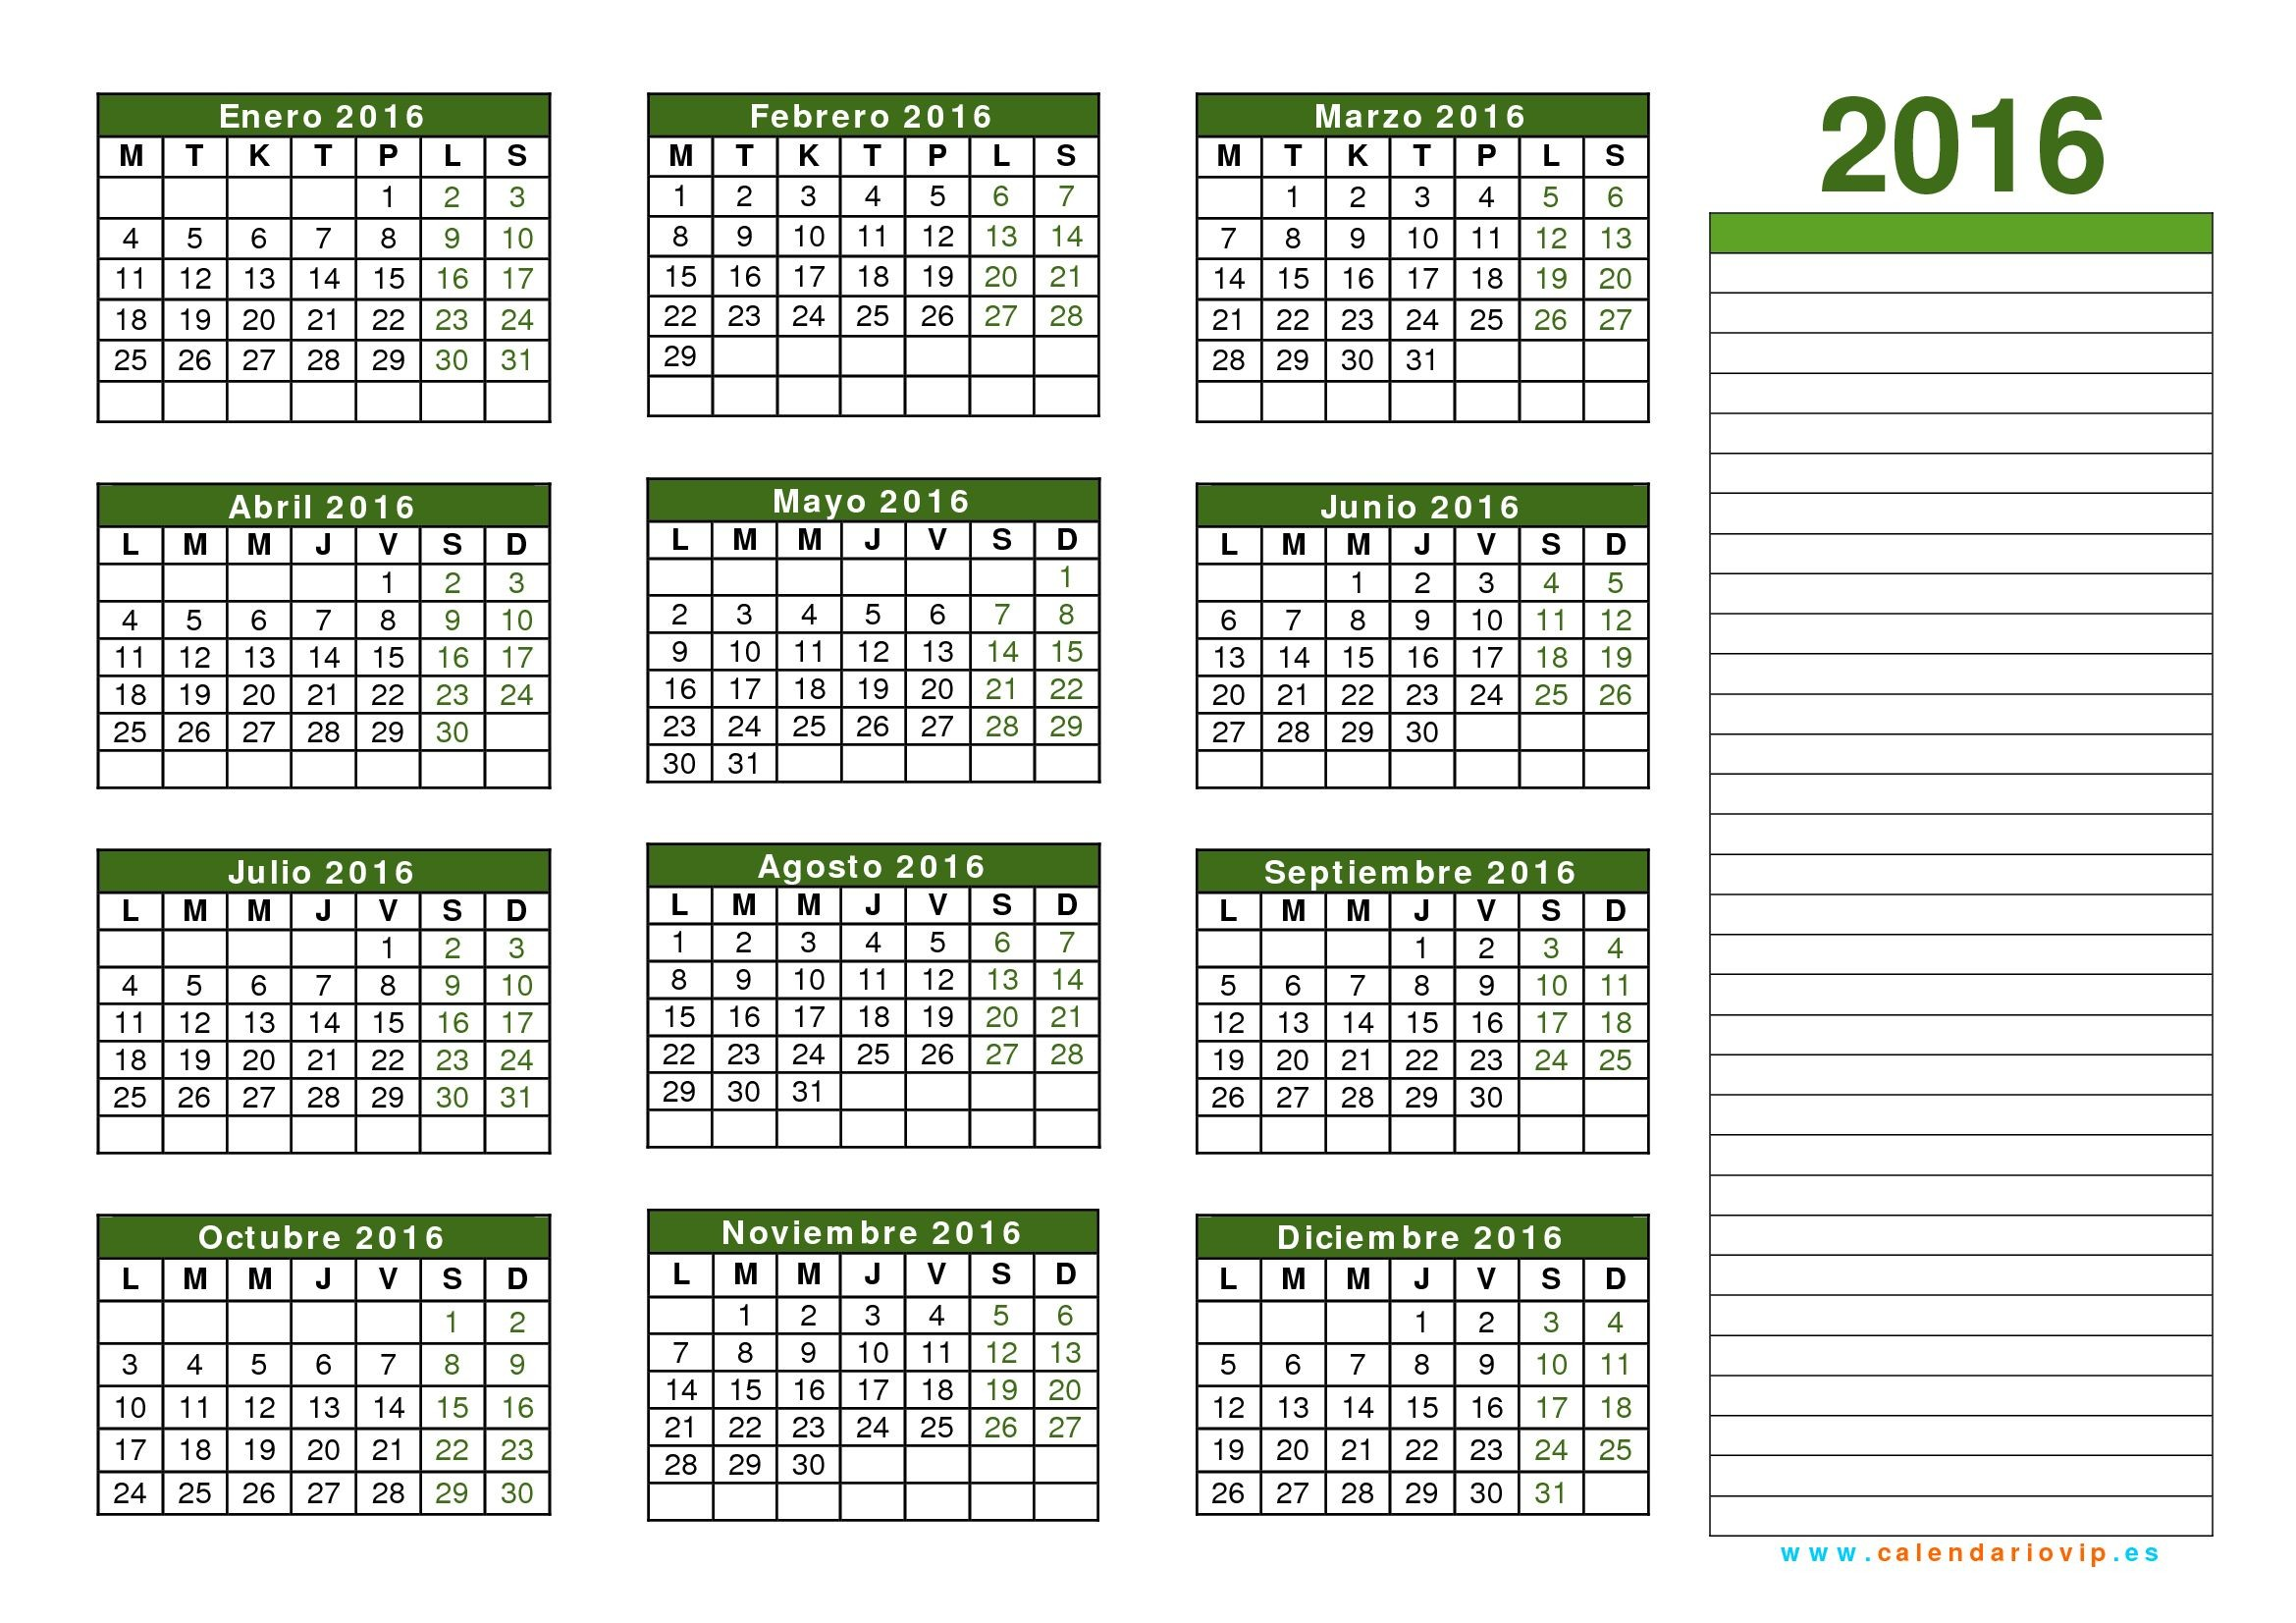 Calendario Julio 2020 Colombia Más Recientes 11 Best Calendario Enero 2019 Argentina Images Of Calendario Julio 2020 Colombia Más Actual Es Calendario 2019 Con Festivos Usa